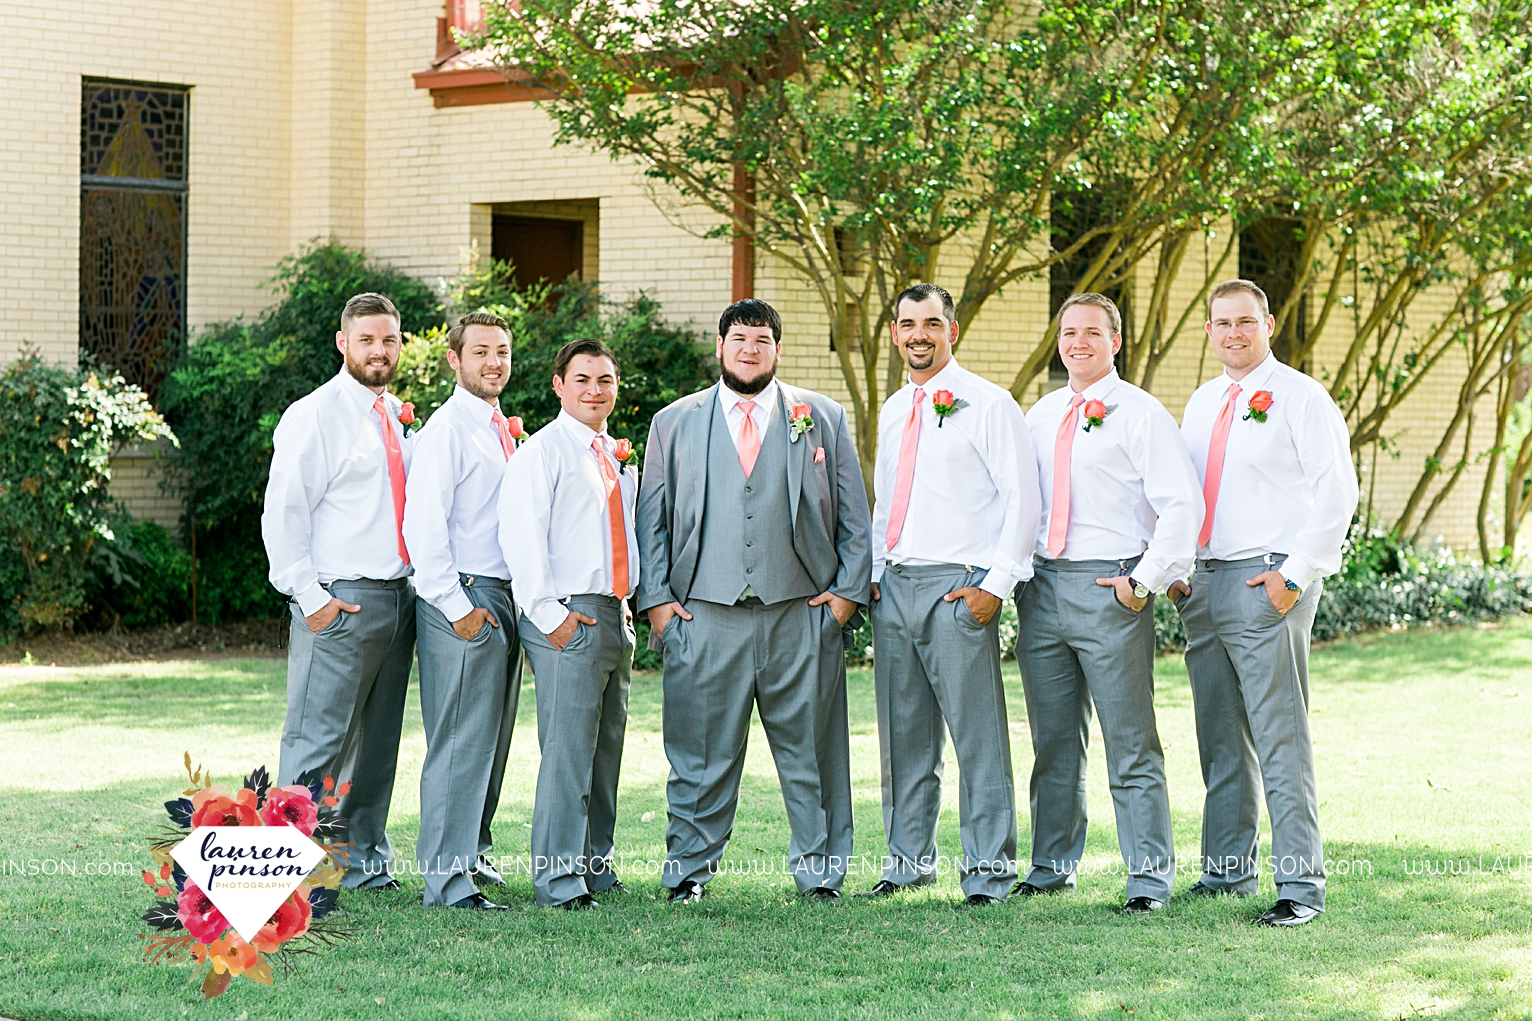 wichita-falls-texas-wedding-photography-seymour-st-marys-catholic-church-wedding-texas-photographer-00051.jpg